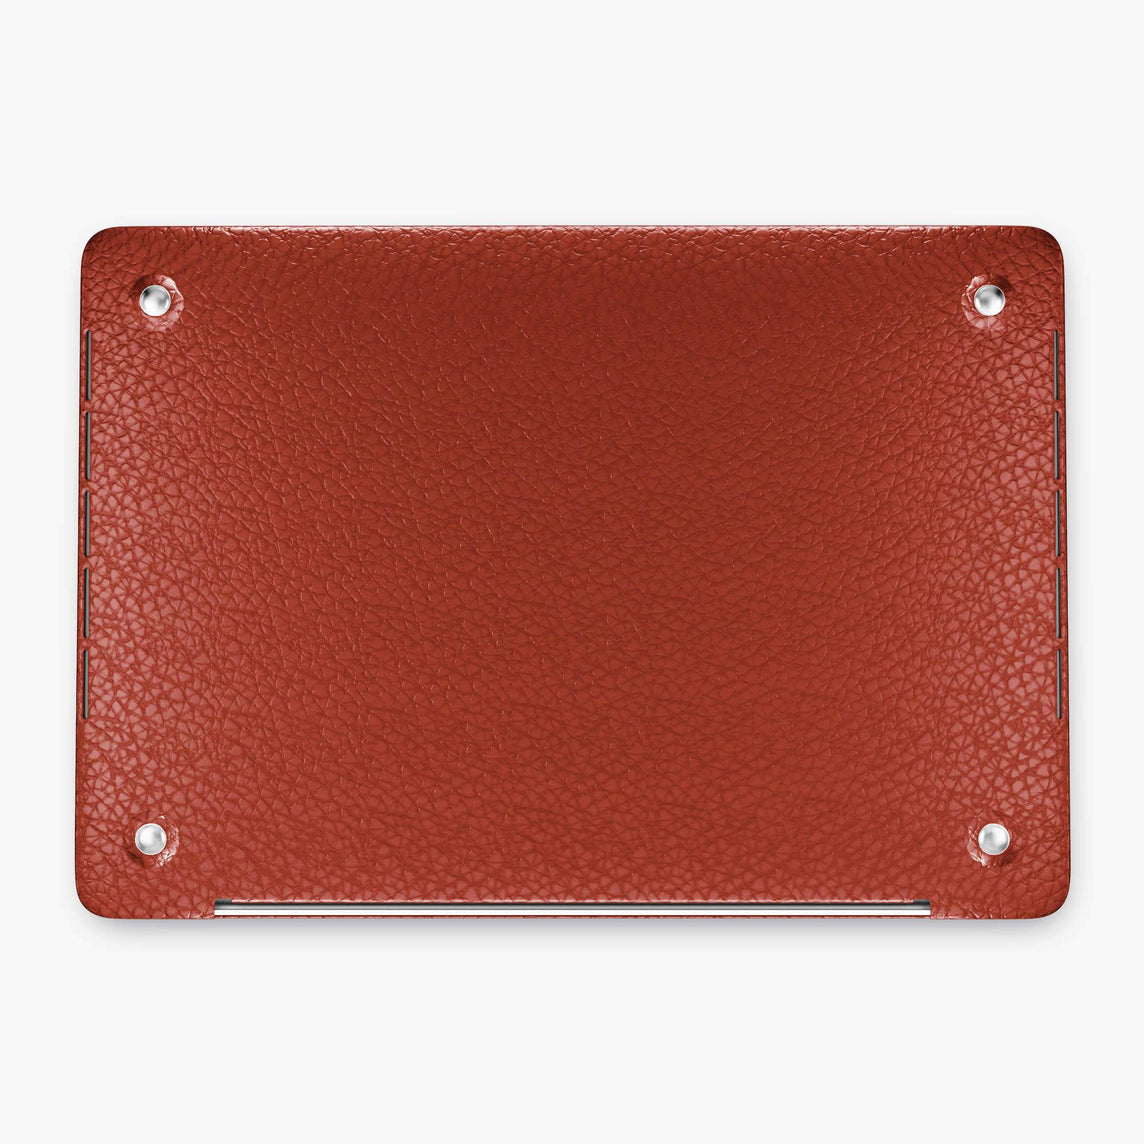 Calfskin Macbook Case Apple Mac Book 15'' Pro | Red - Black